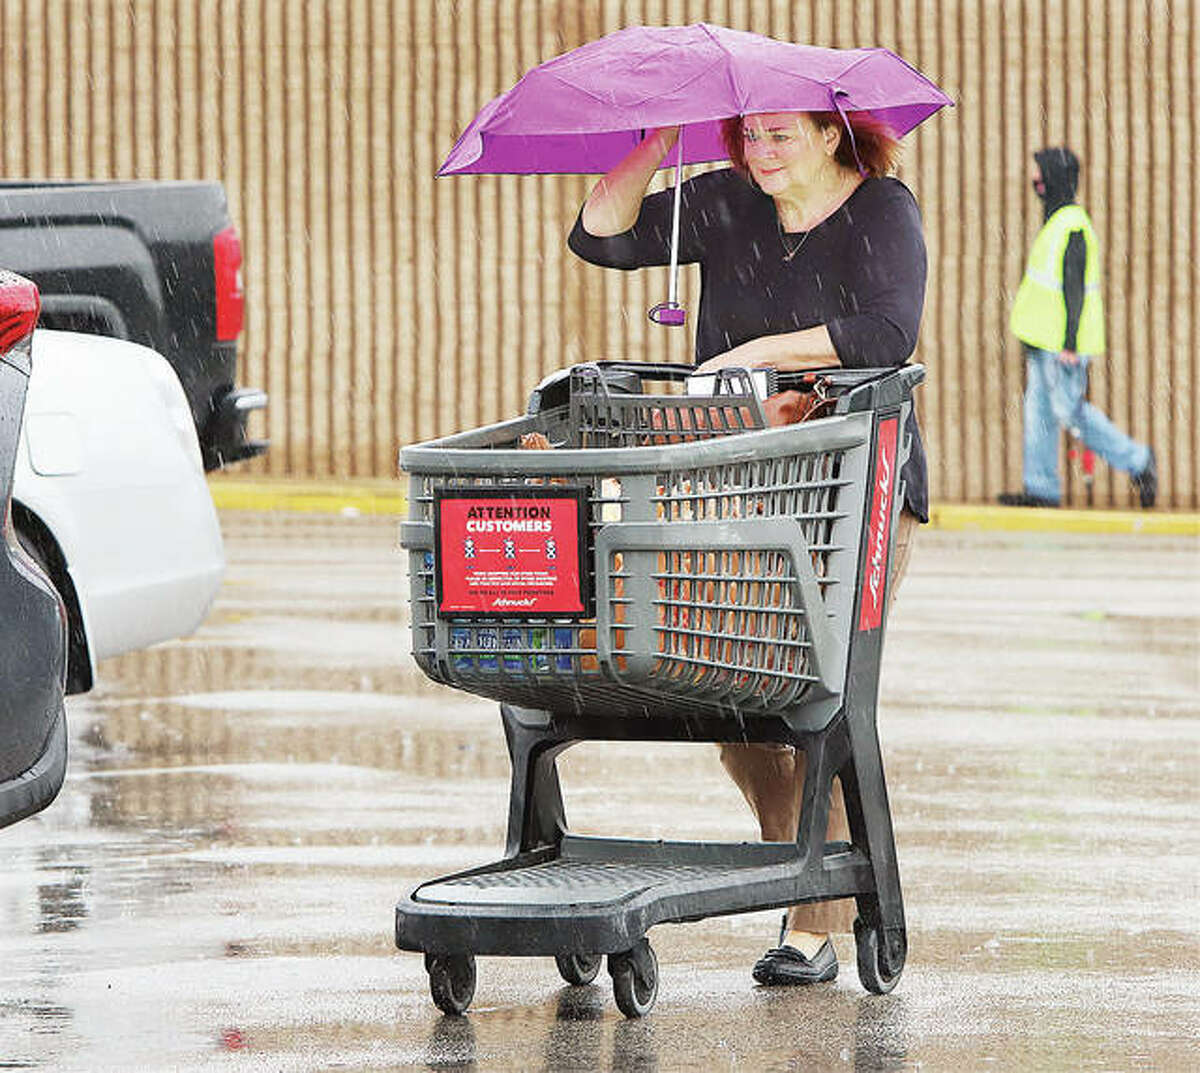 Alton attorney Amy Sholar joined other people Wednesday in bringing out their umbrellas to stay dry from the light but seemingly constant rainfall across the area.